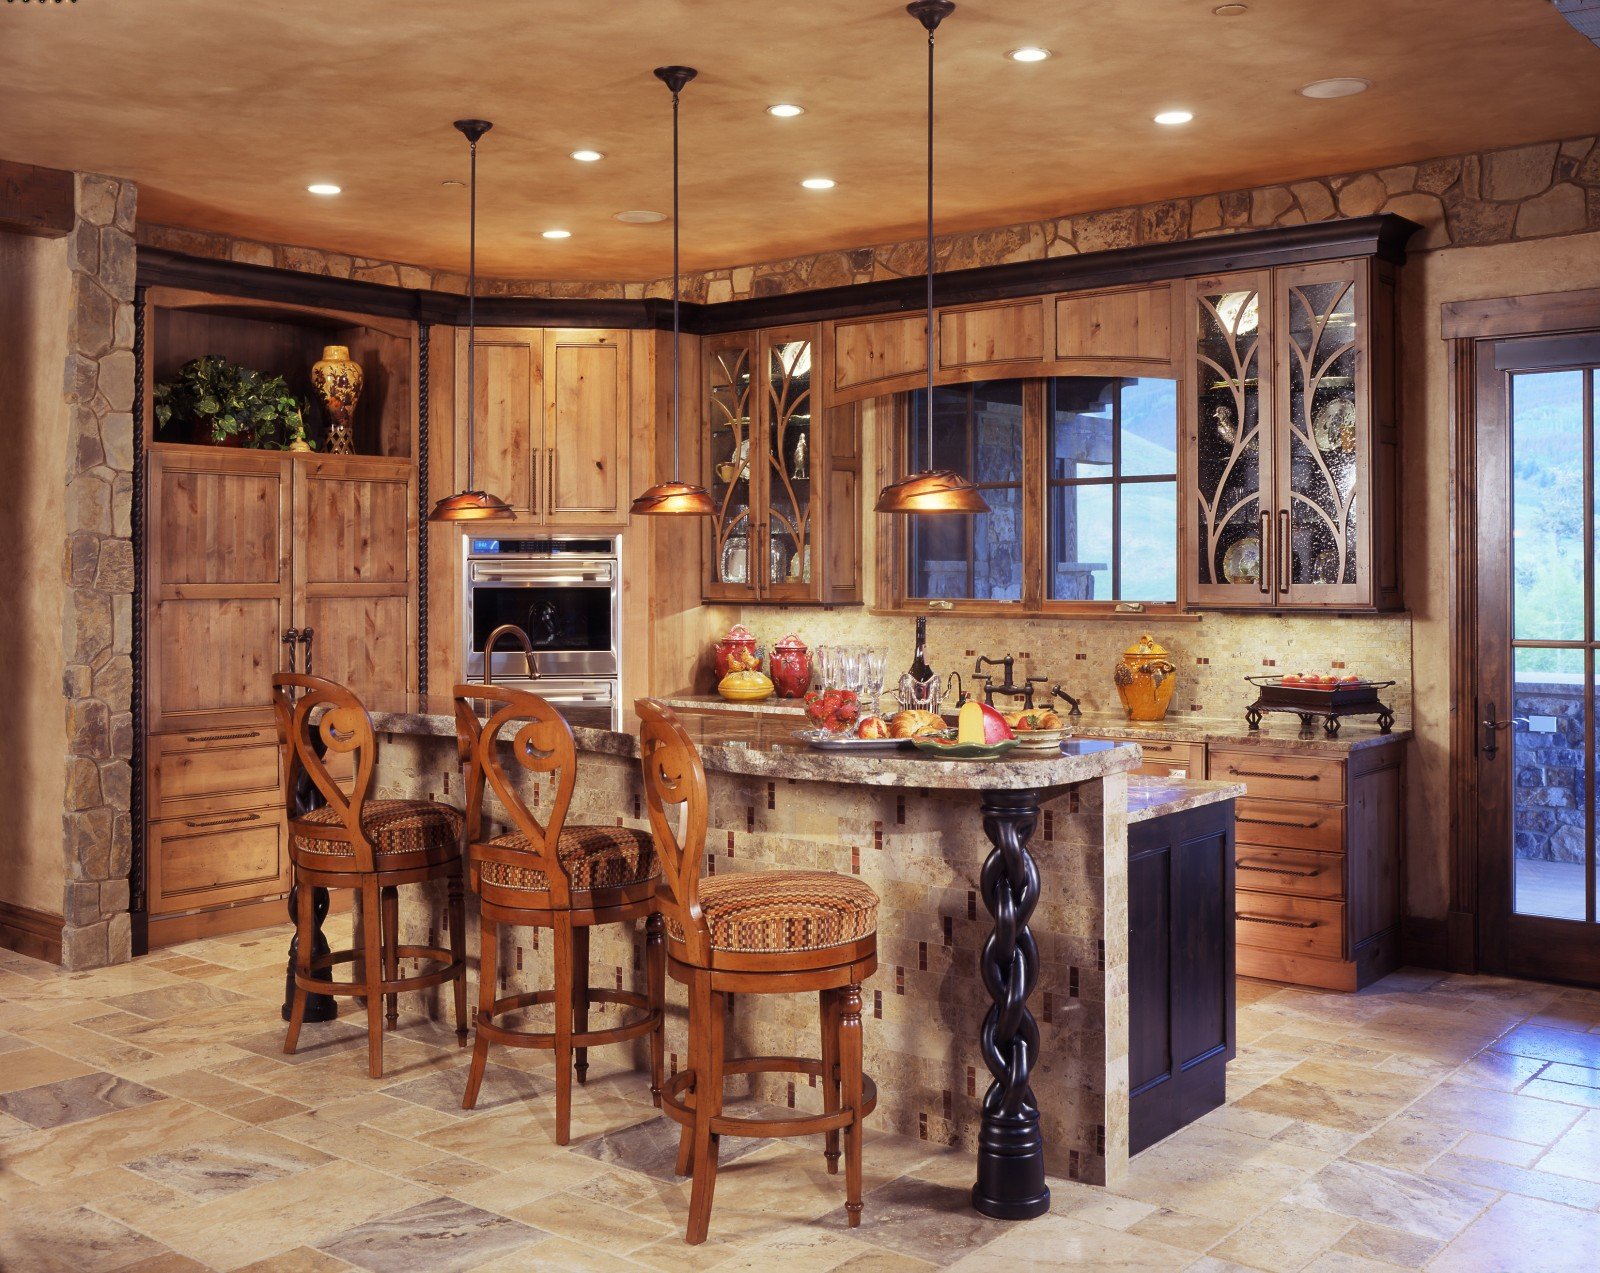 Kitchen Decor Top 25 Ideas To Spruce Up The Kitchen Decor In 2014 Qnud